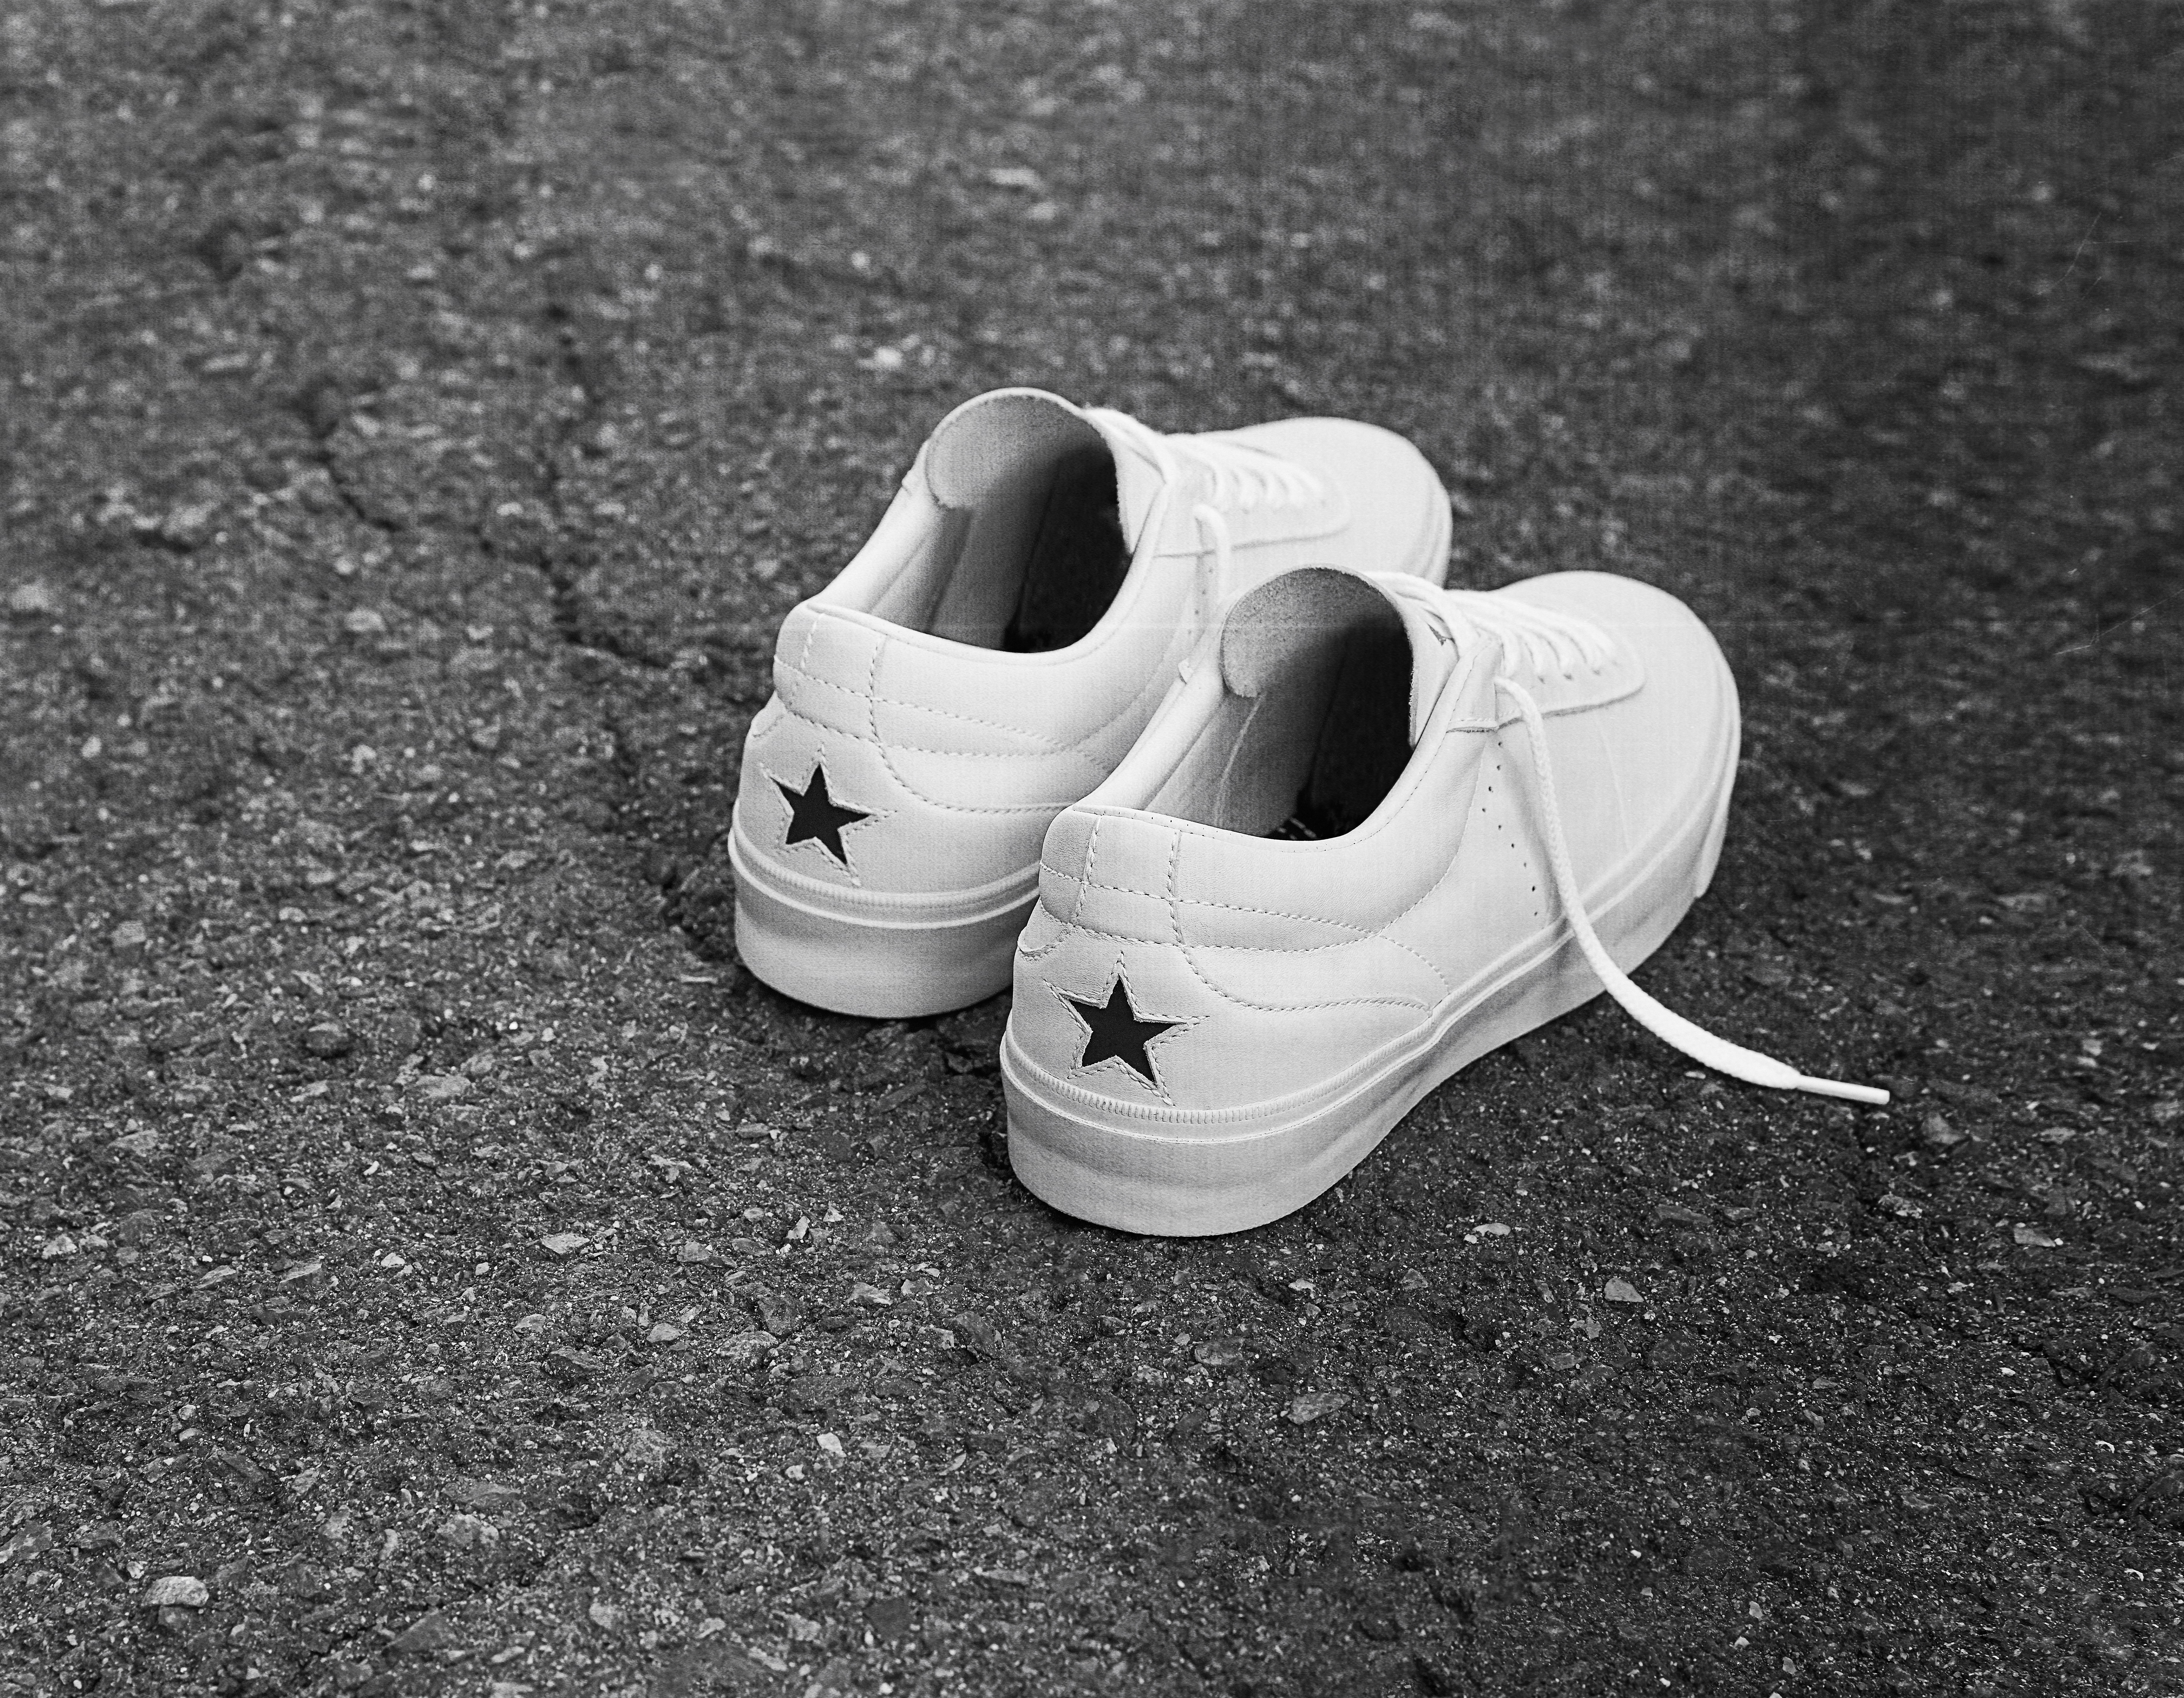 converse one star gold